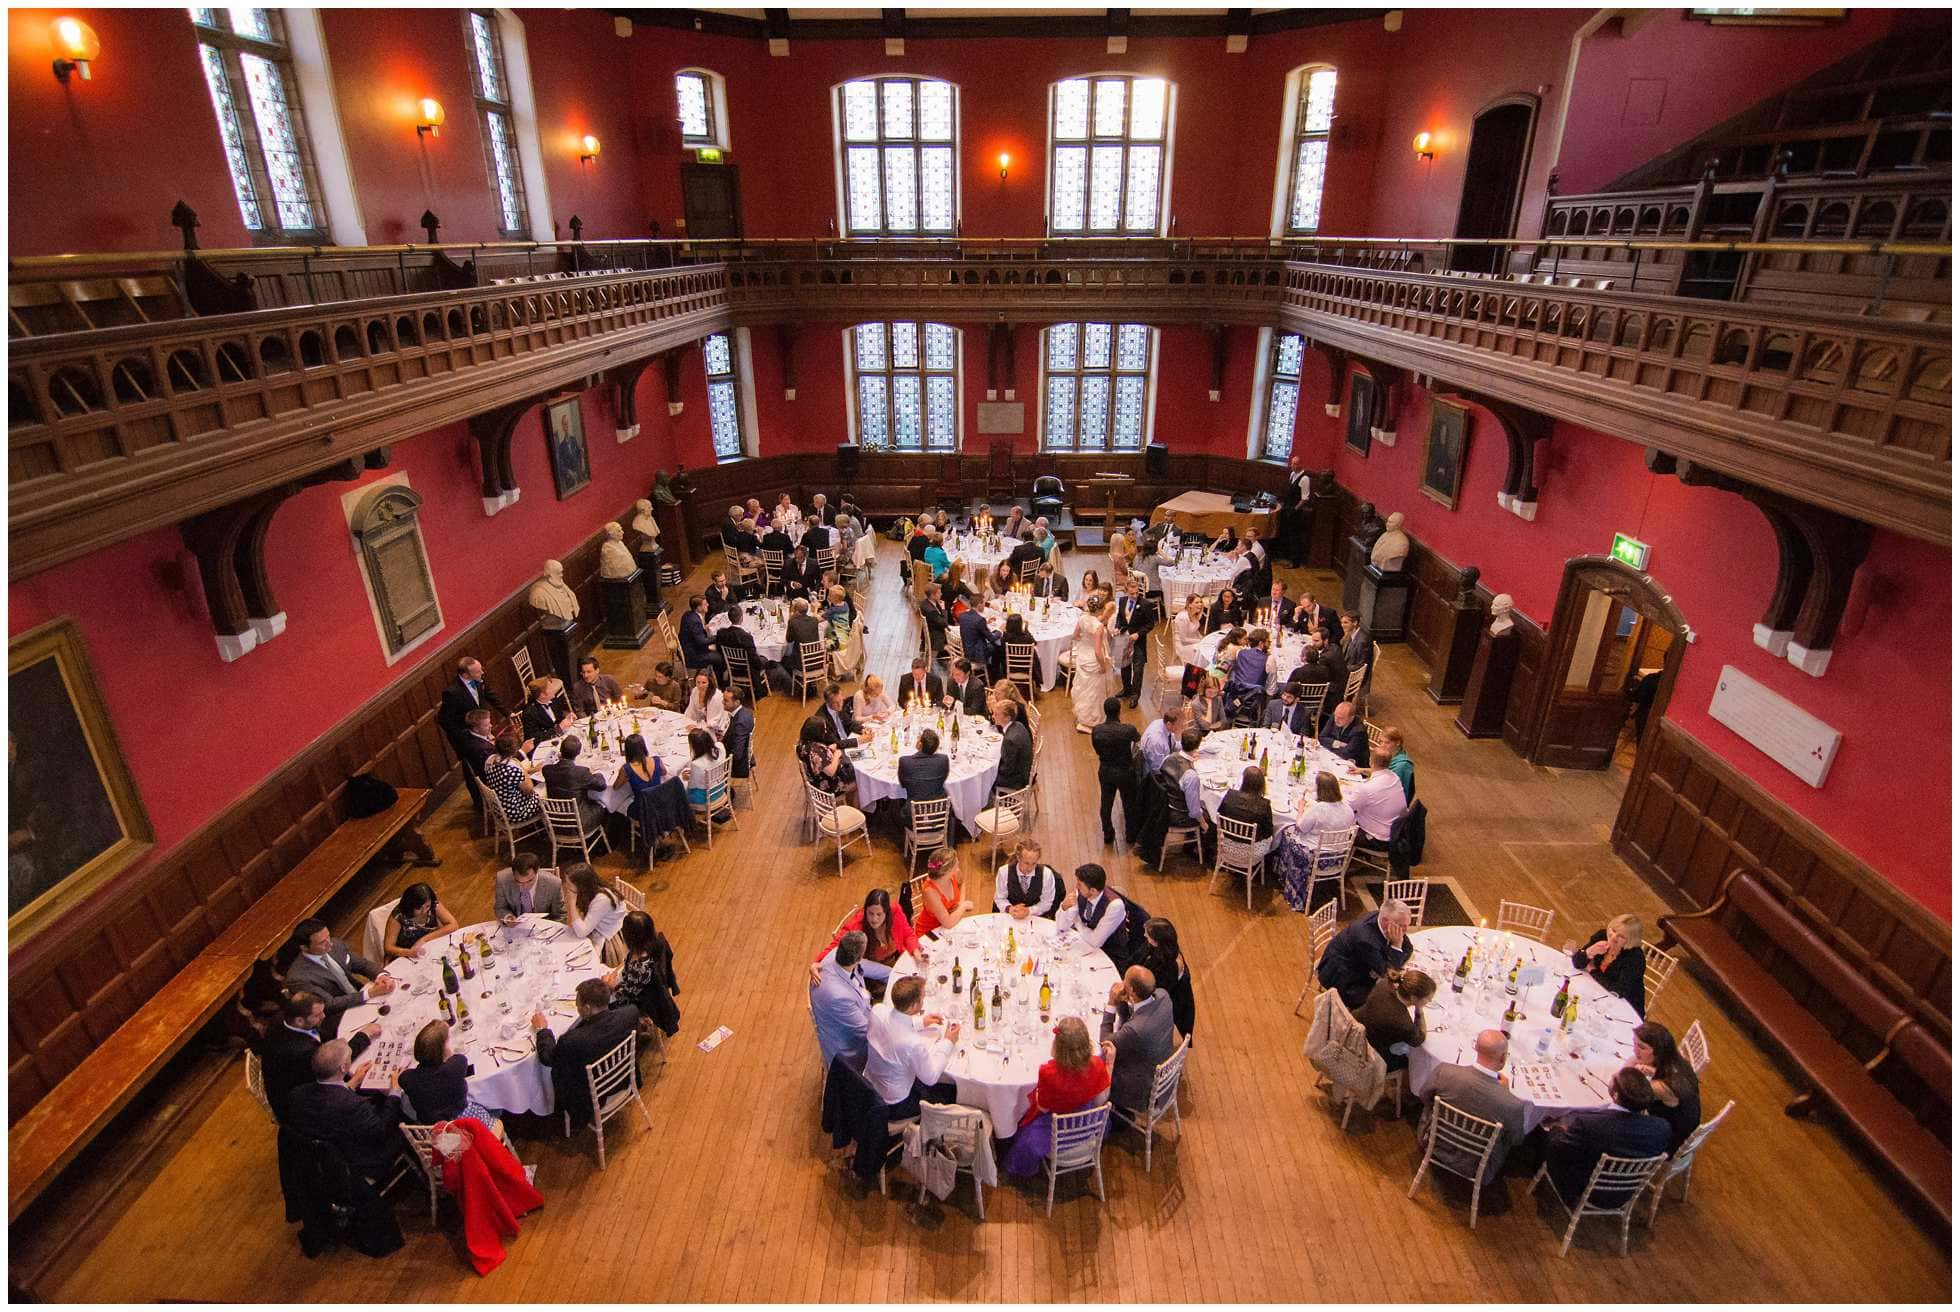 The debating chamber at Oxford Union during a wedding meal